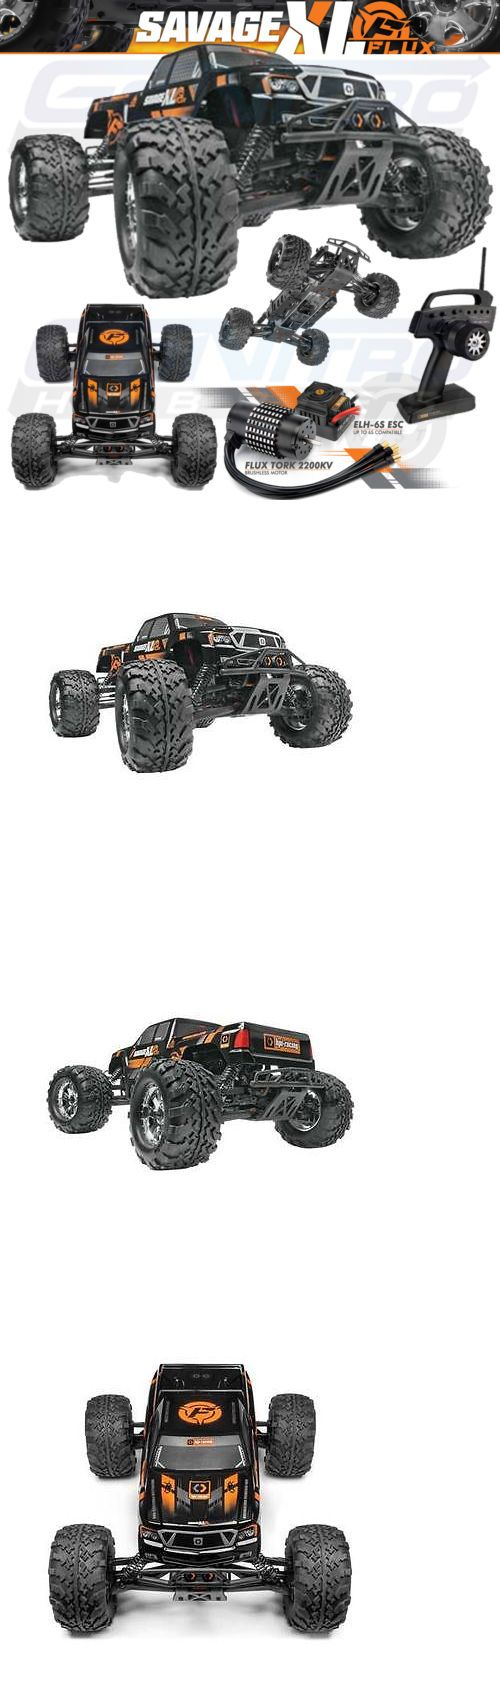 Cars Trucks and Motorcycles 182183: Hpi 112609 1 8 Savage Xl Flux 6S Brushless 4Wd Rtr W Radio -> BUY IT NOW ONLY: $649.99 on eBay!